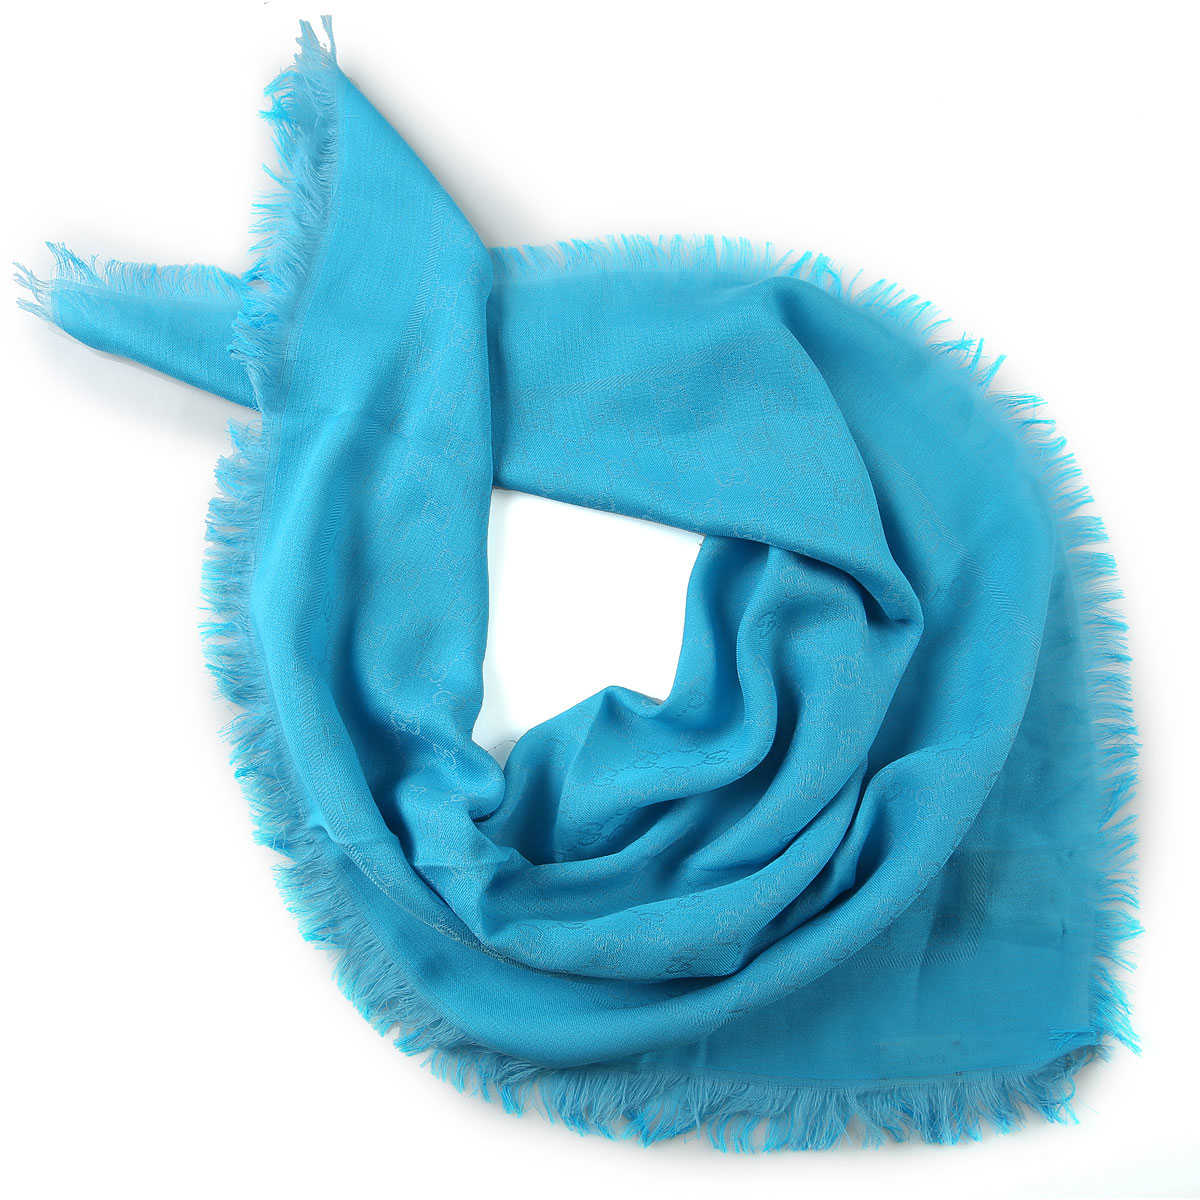 Gucci Kids Scarves for Boys Sky Blue USA - GOOFASH